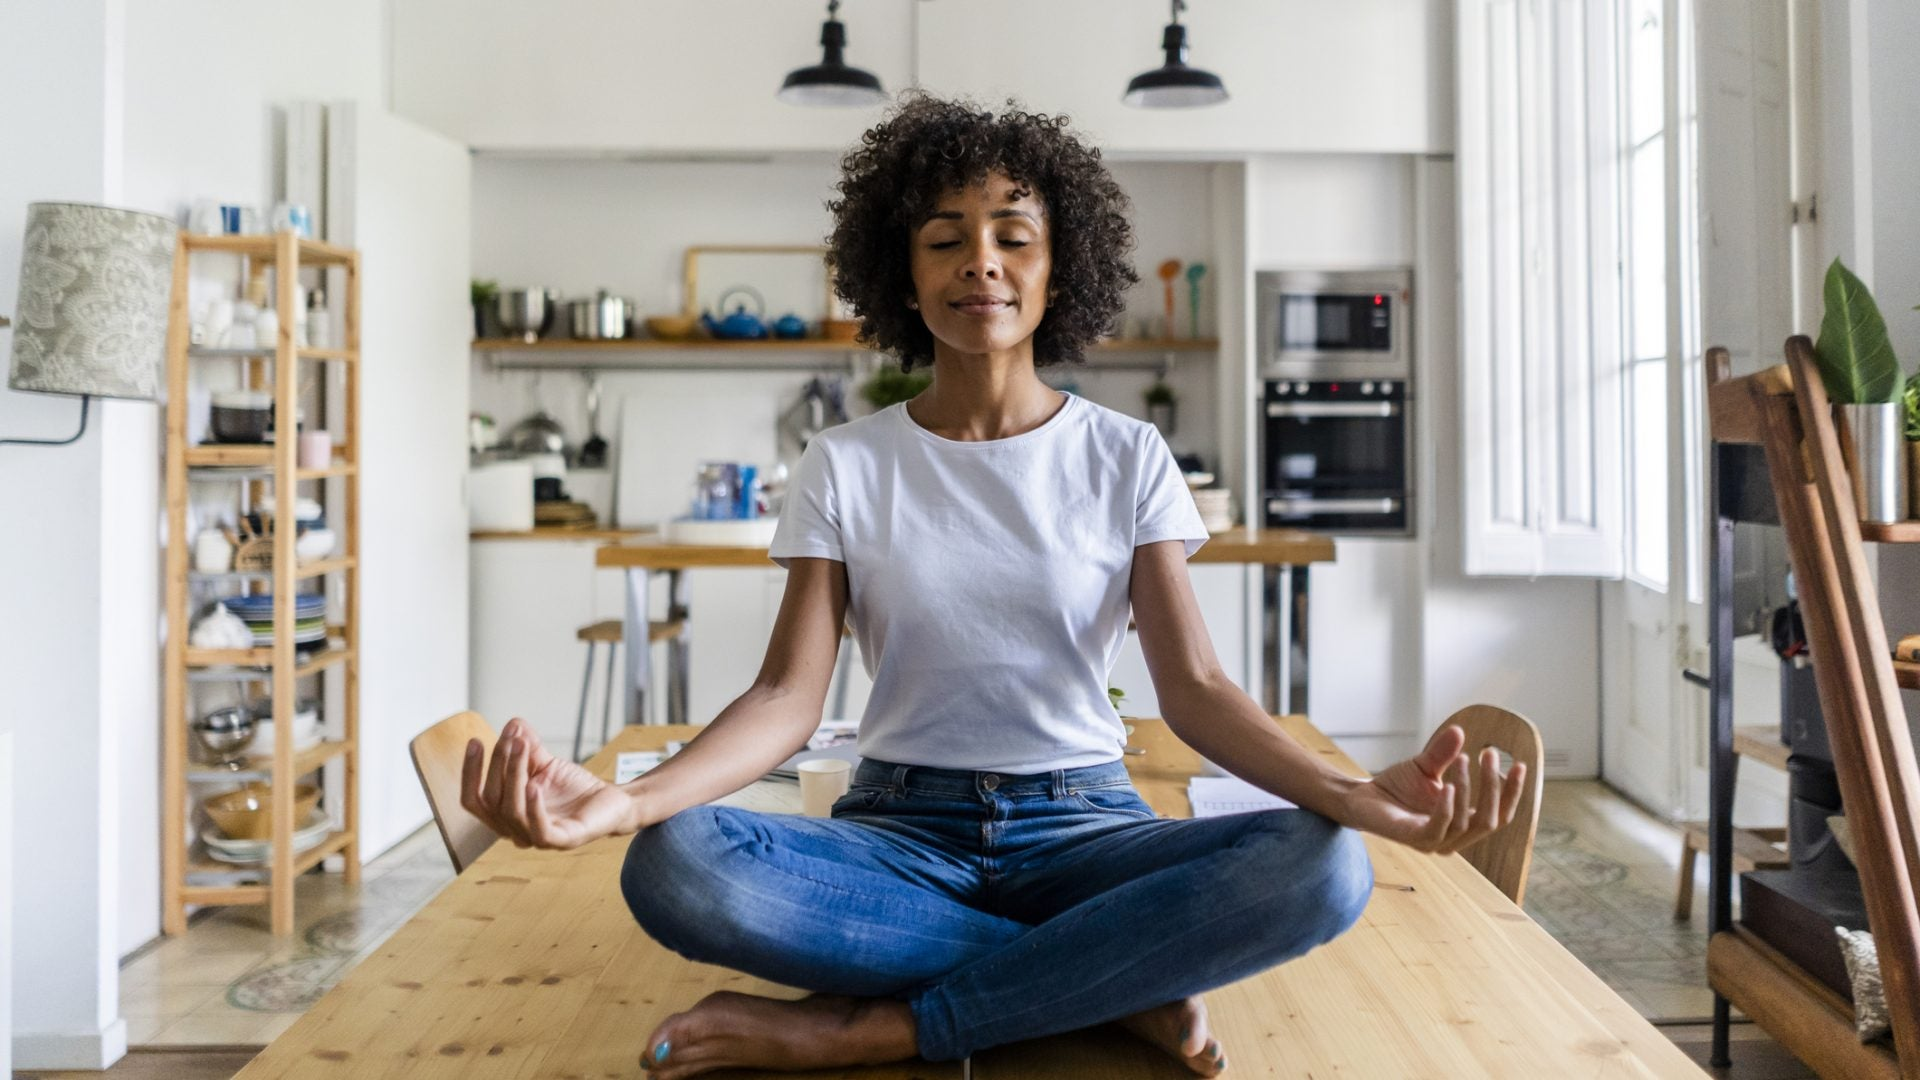 Feeling Anxious? Check Out These Free Meditation Apps To Help You Stay Calm